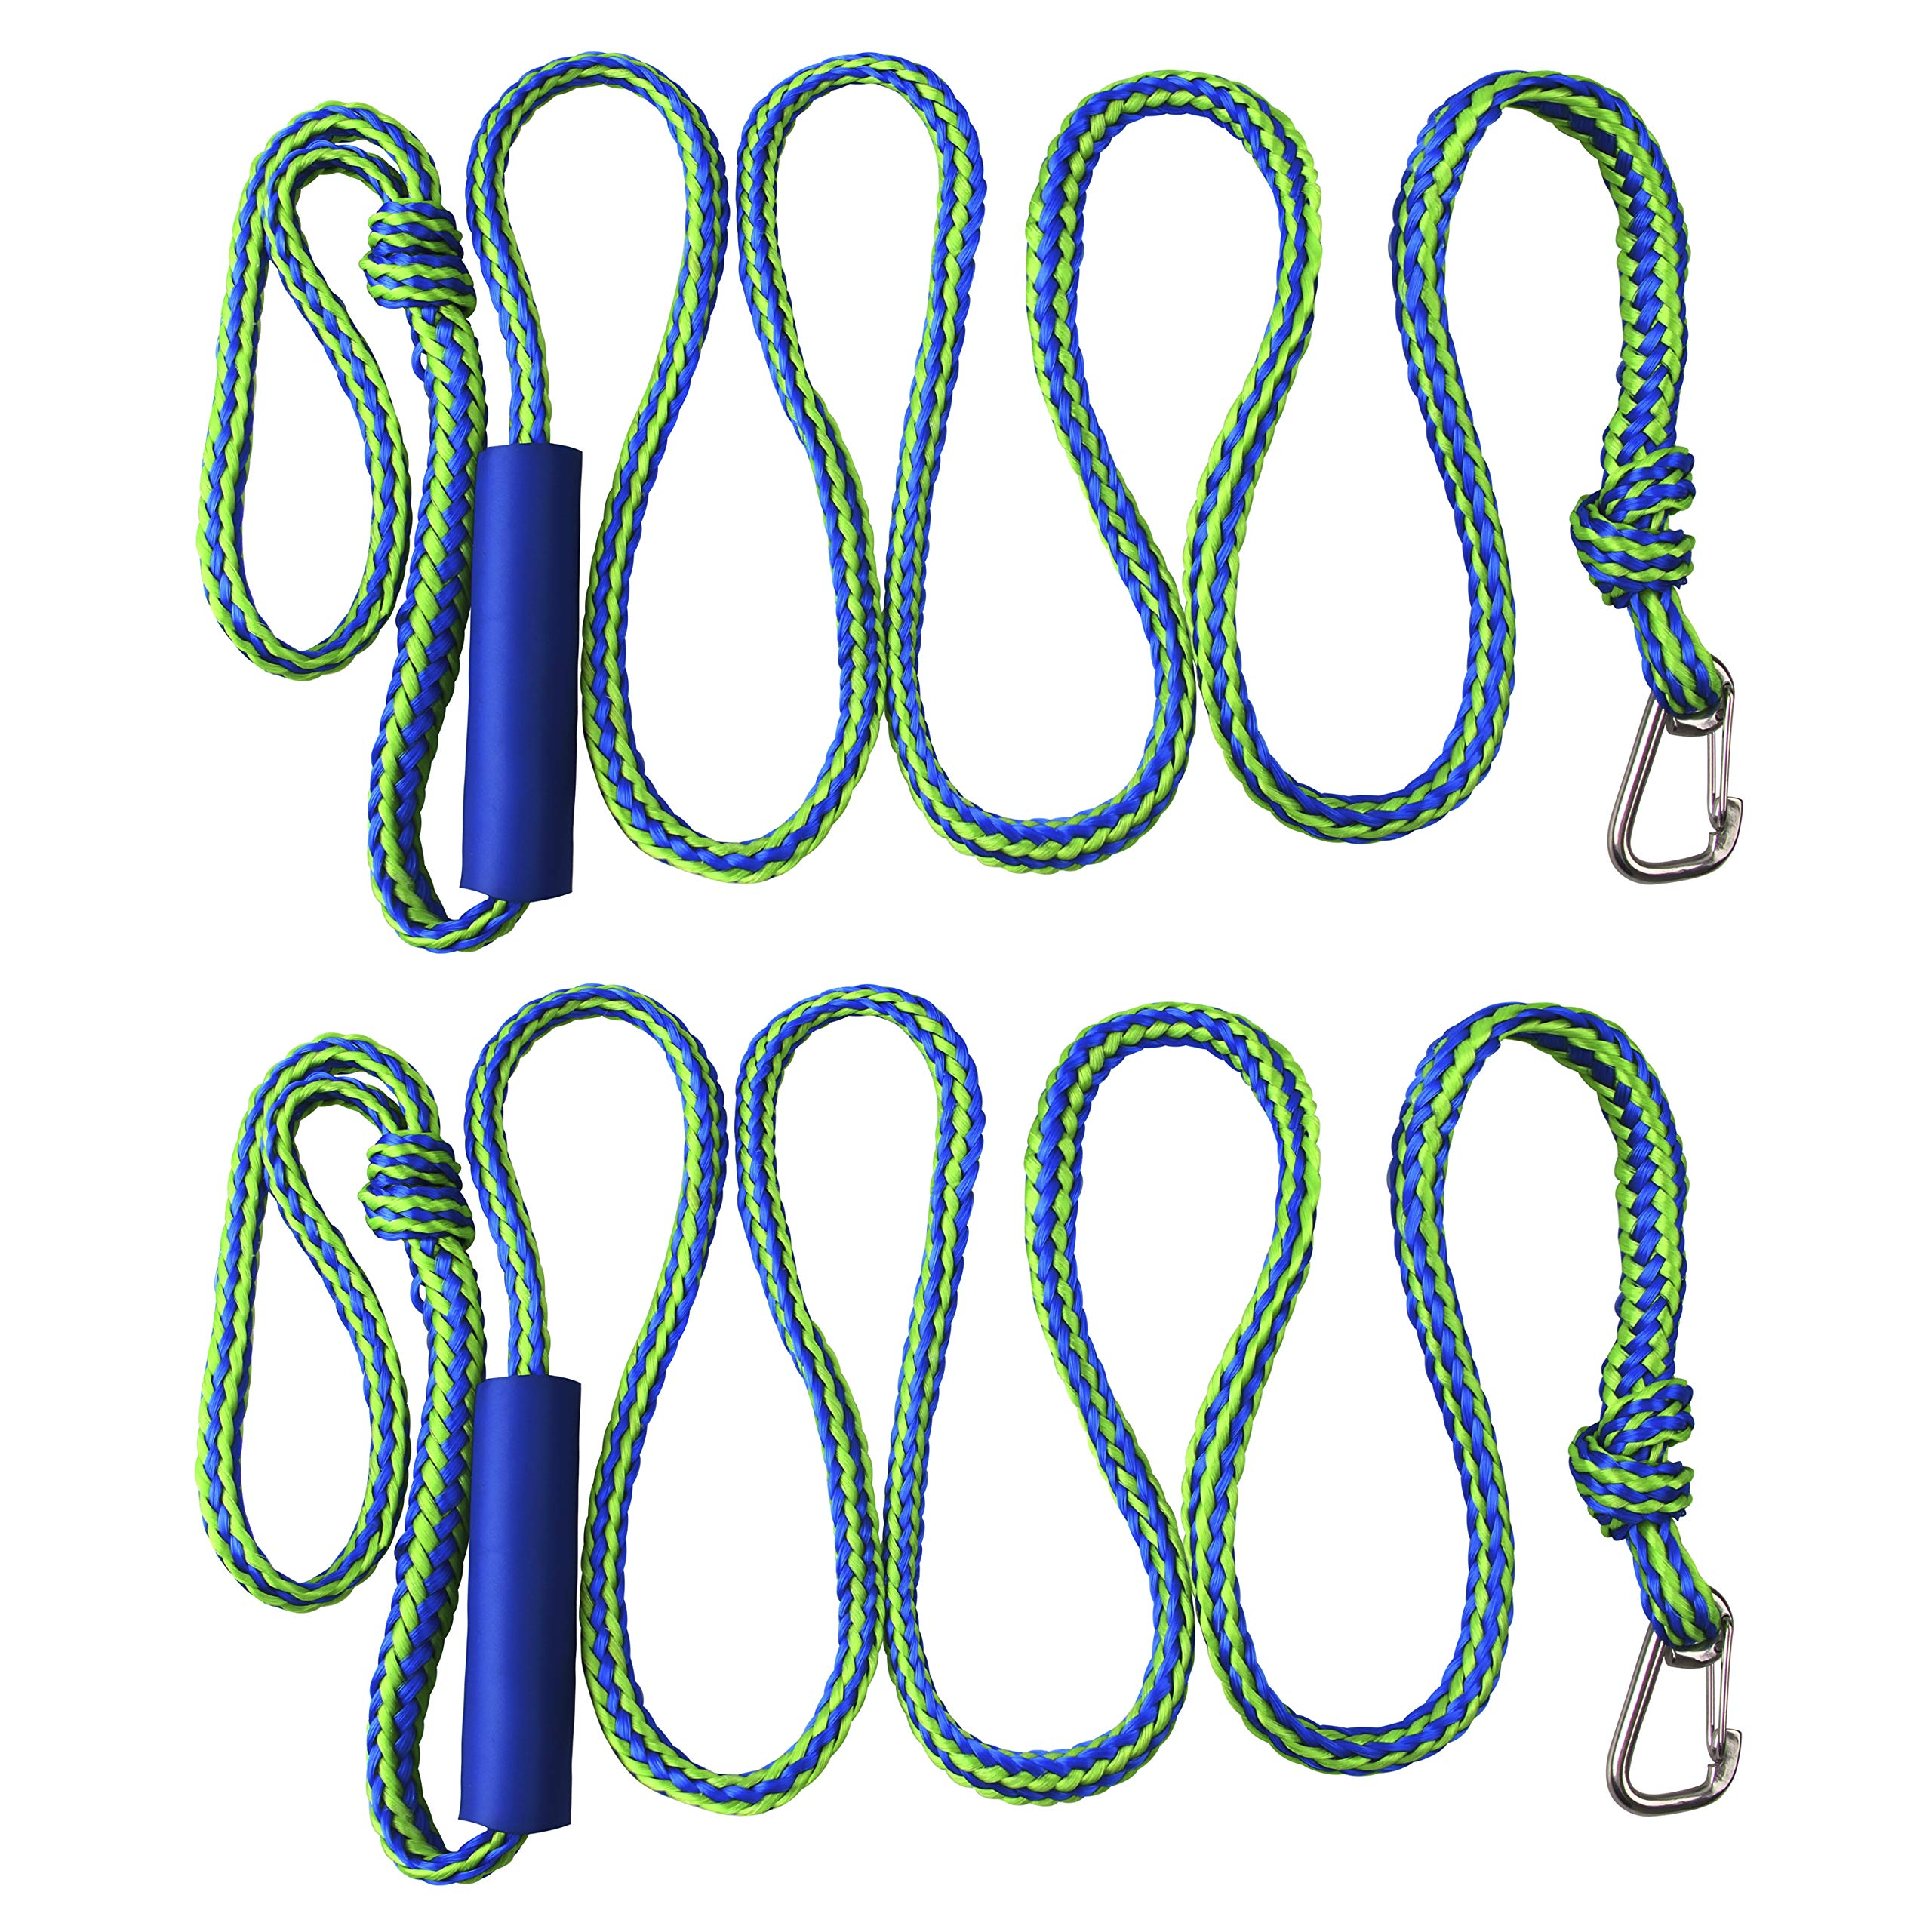 Shaddock Fishing PWC Boat Docking Lines,2 Pack Tow Rope with Clip and Loop Heavy Duty Braided Line Marine Rope Tube Ideal for Jet Ski Watercraft Boat Kayaking Available in 4 Sizes